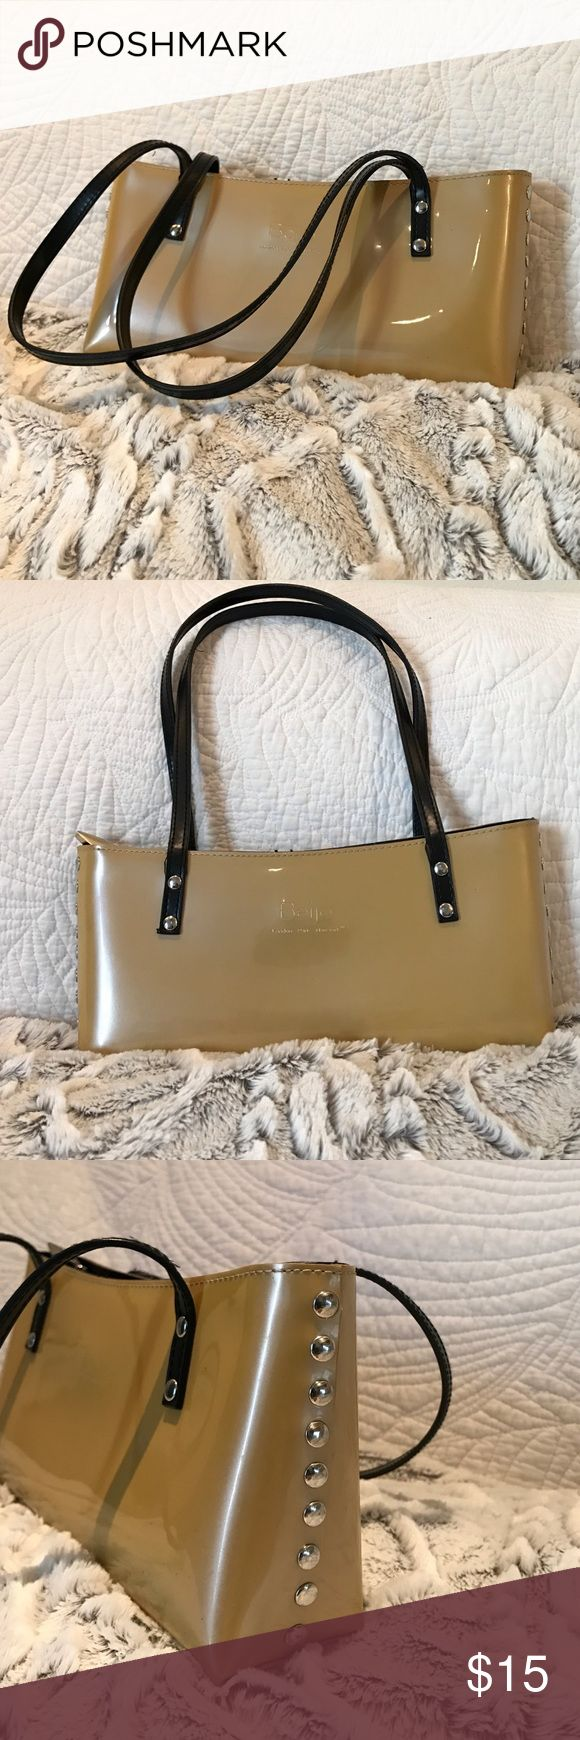 Shimmering Deep Gold  Beijo Purse This is a deep gold, or shimmer mustard yellow color. It has a zipper to close the main compartment. Inside the bag there is a zippered pocket and there is an organization pocket. The straps has a slight wear to them. Beijo Bags Shoulder Bags